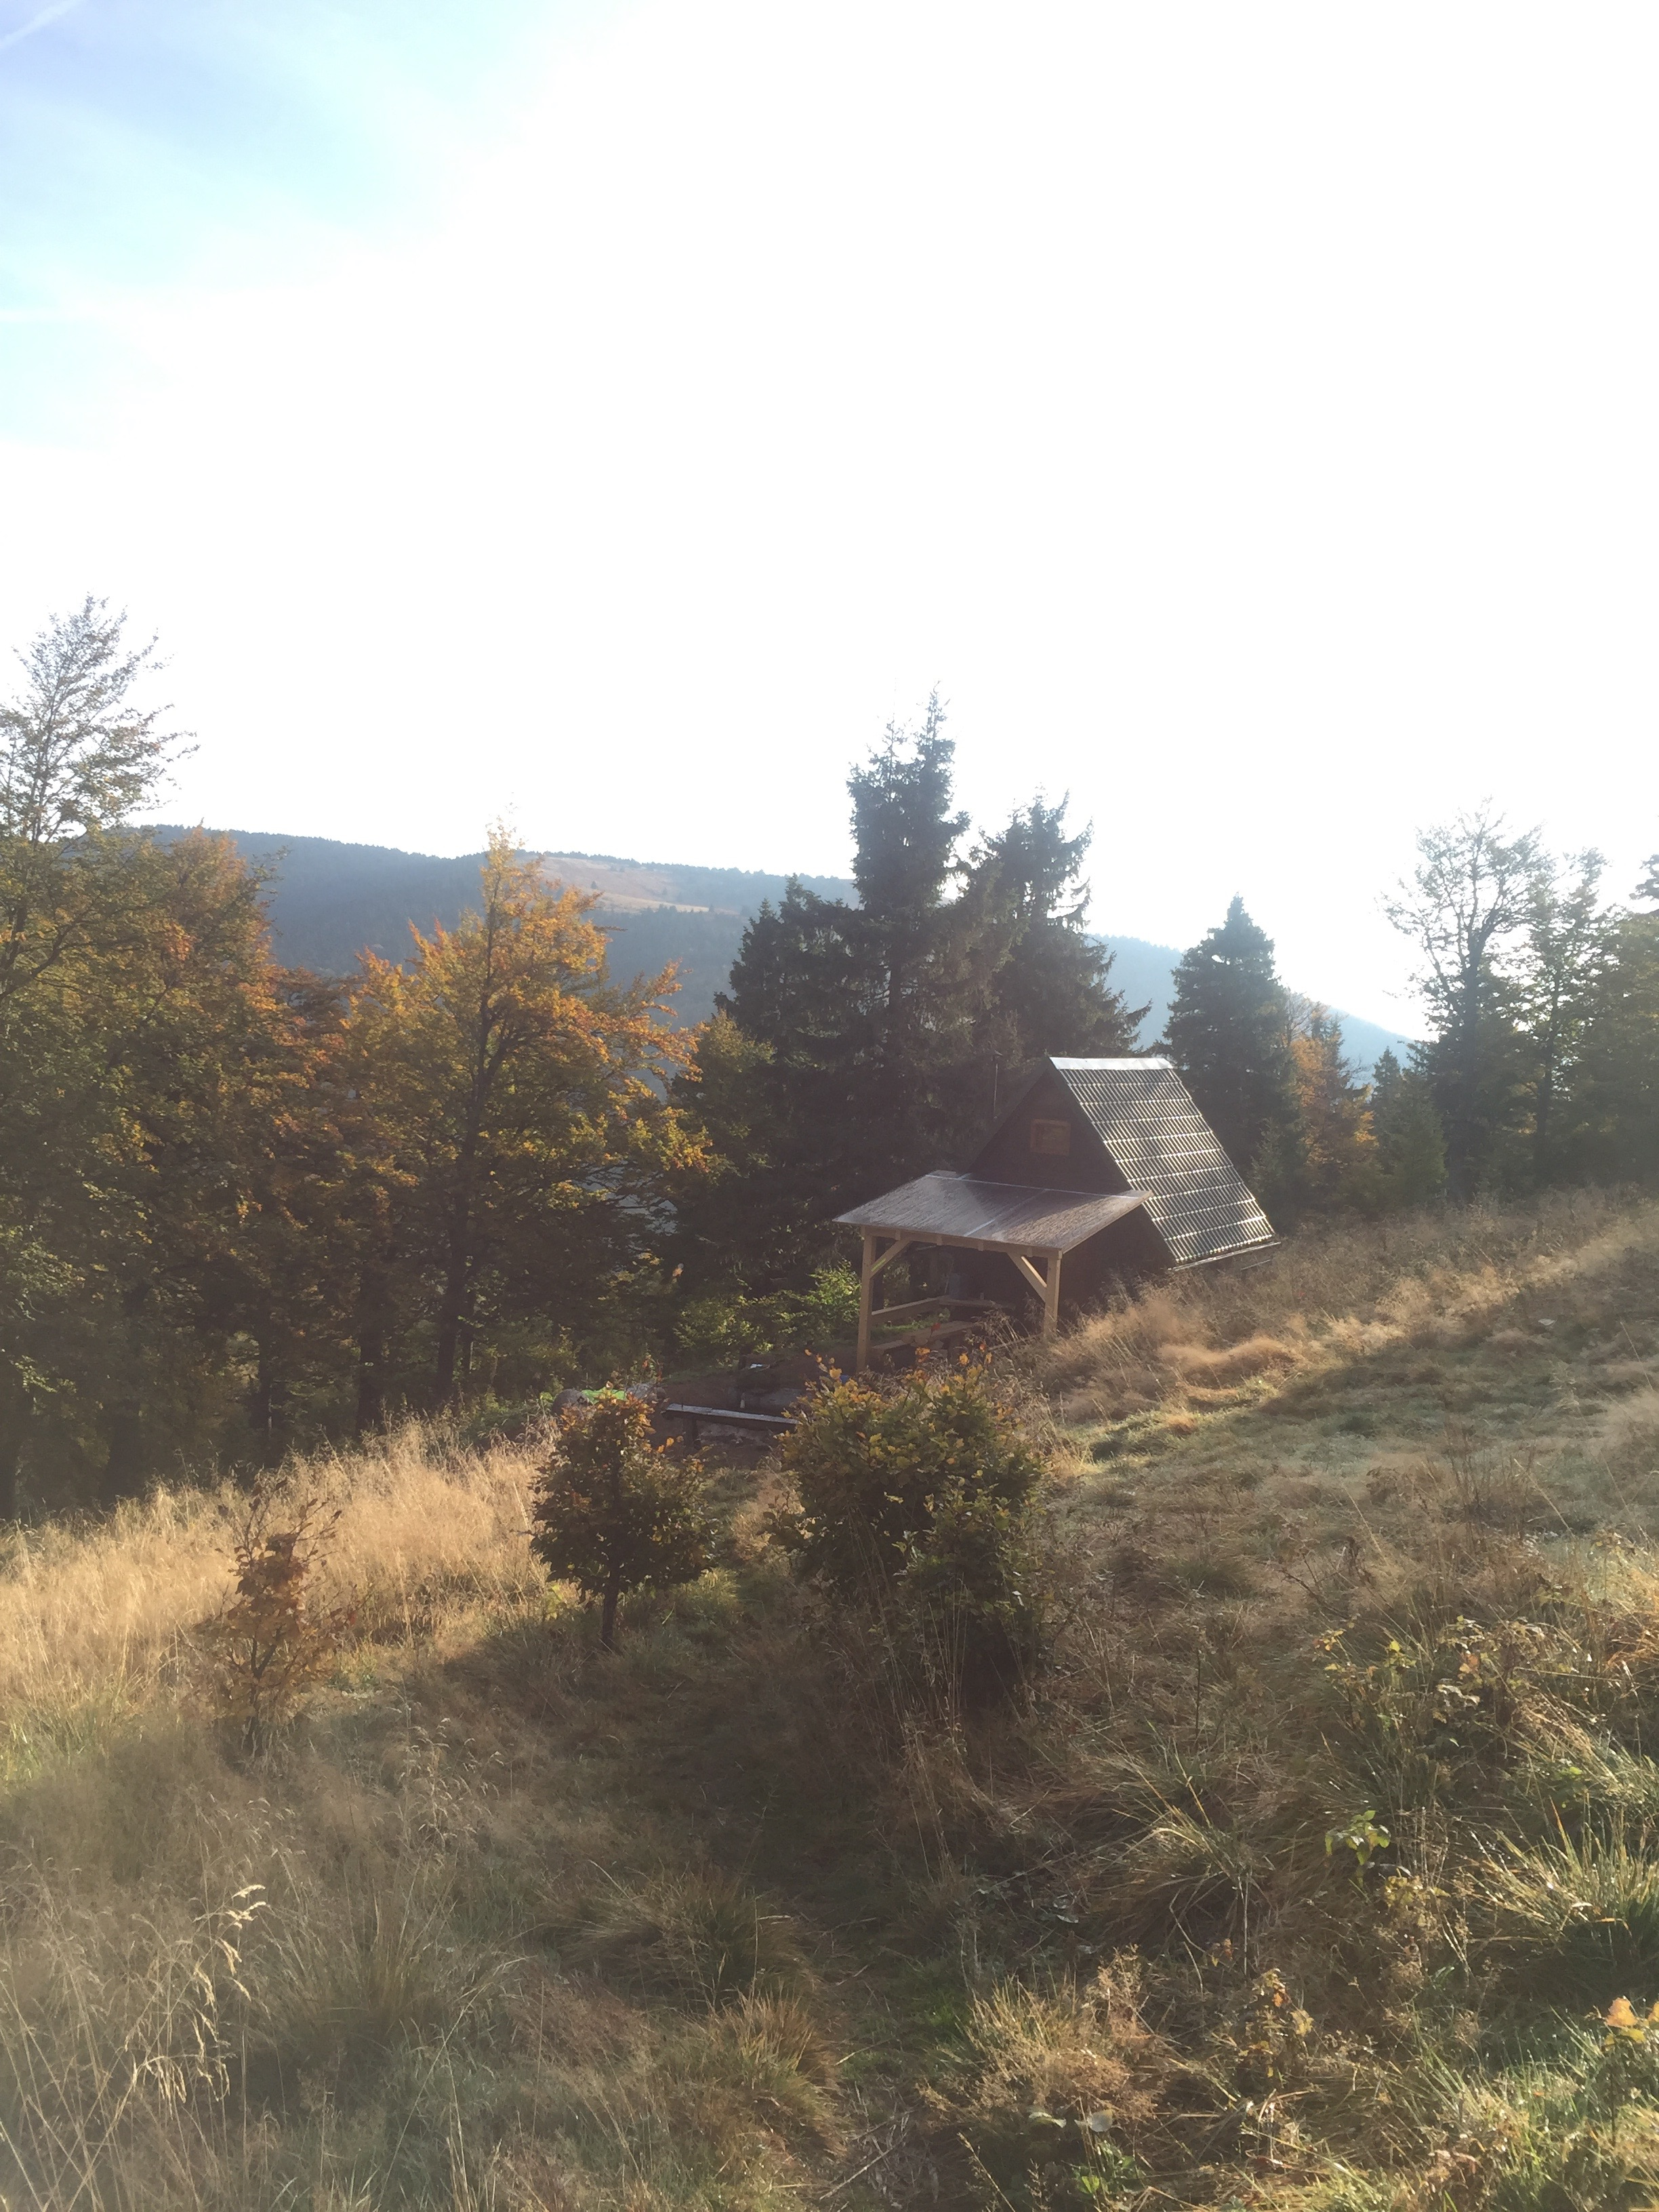 Mountain hut in the mountains in the morning.